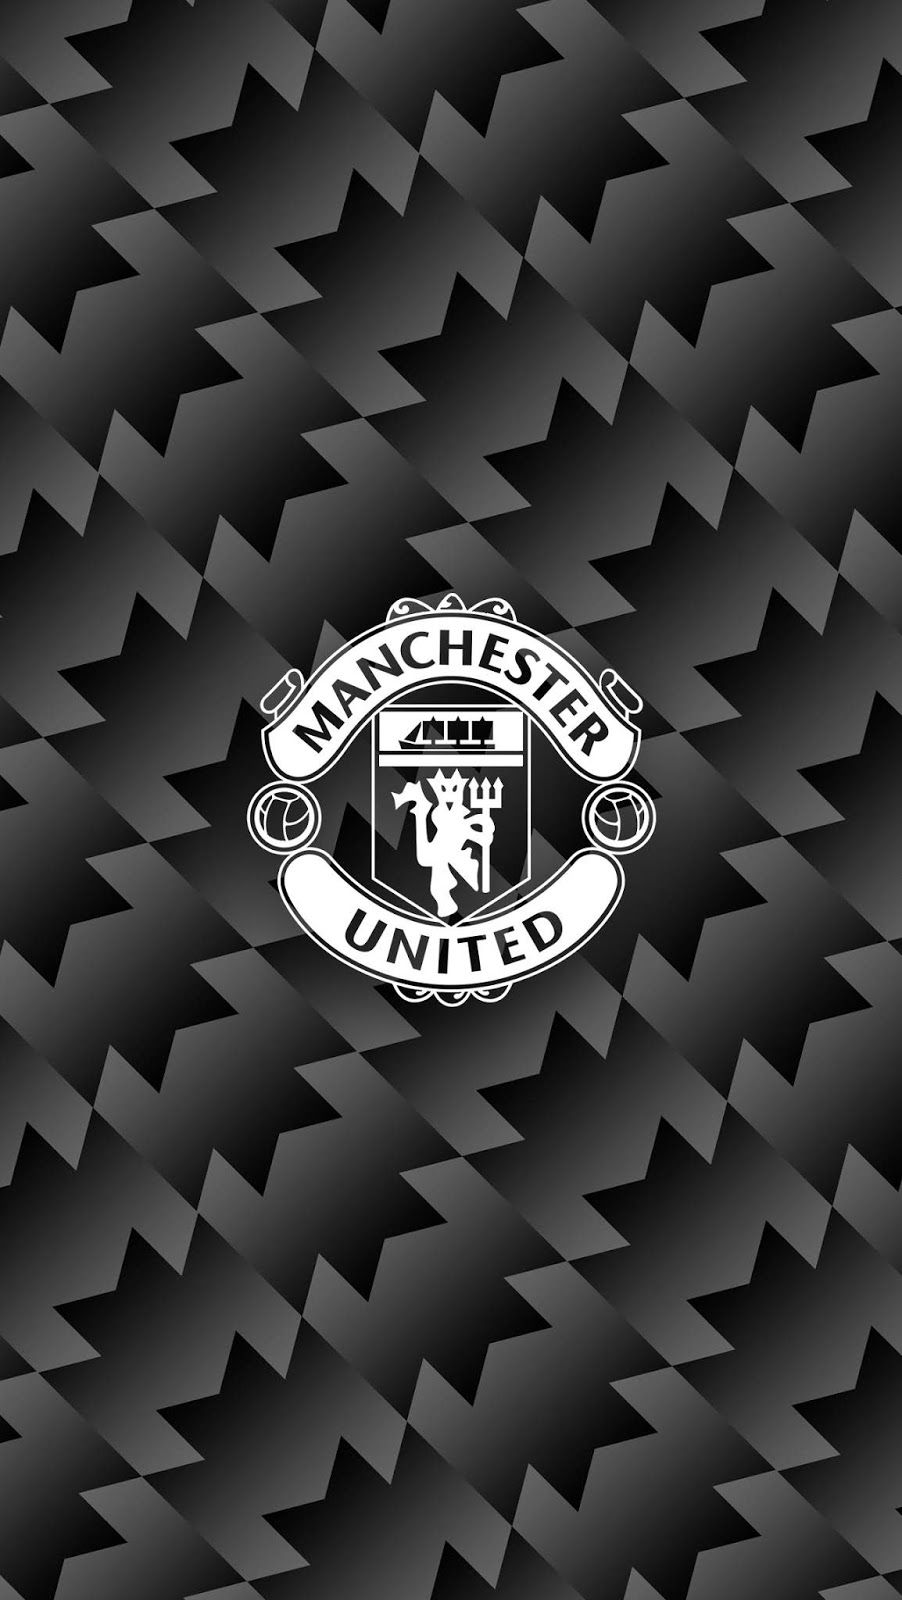 Manchester United Iphone Wallpaper Hd Manchester United Wallpapers Iphone Manchester United Wallpaper Manchester United Art